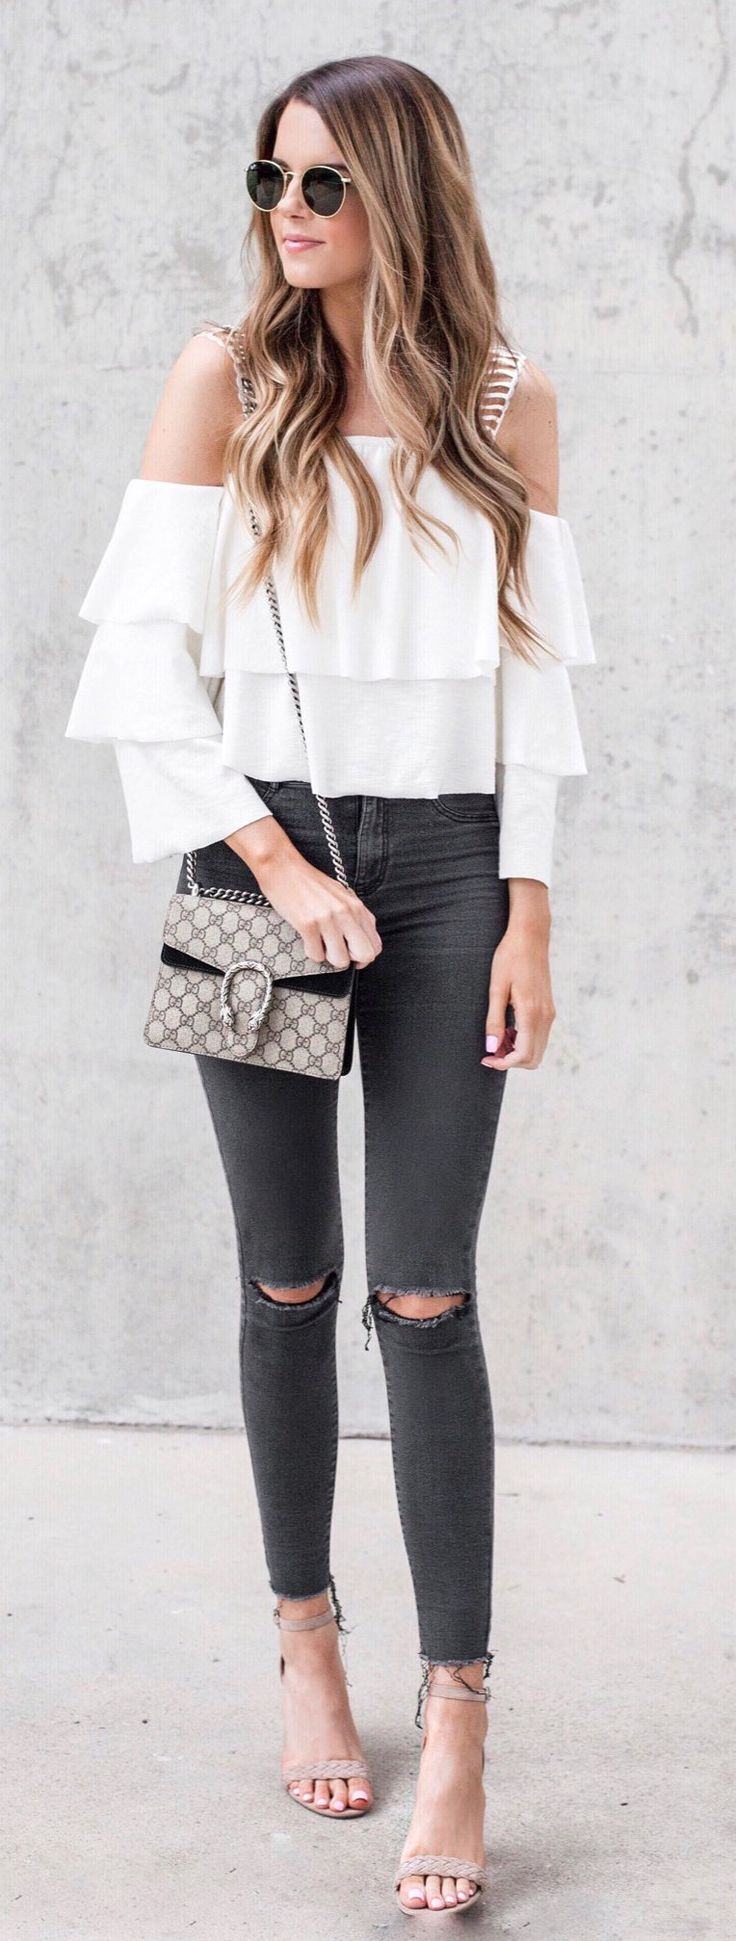 #spring #fashion White Open Shoulder Ruffle Top & Black Ripped Skinny Jeans & Grey Sandals